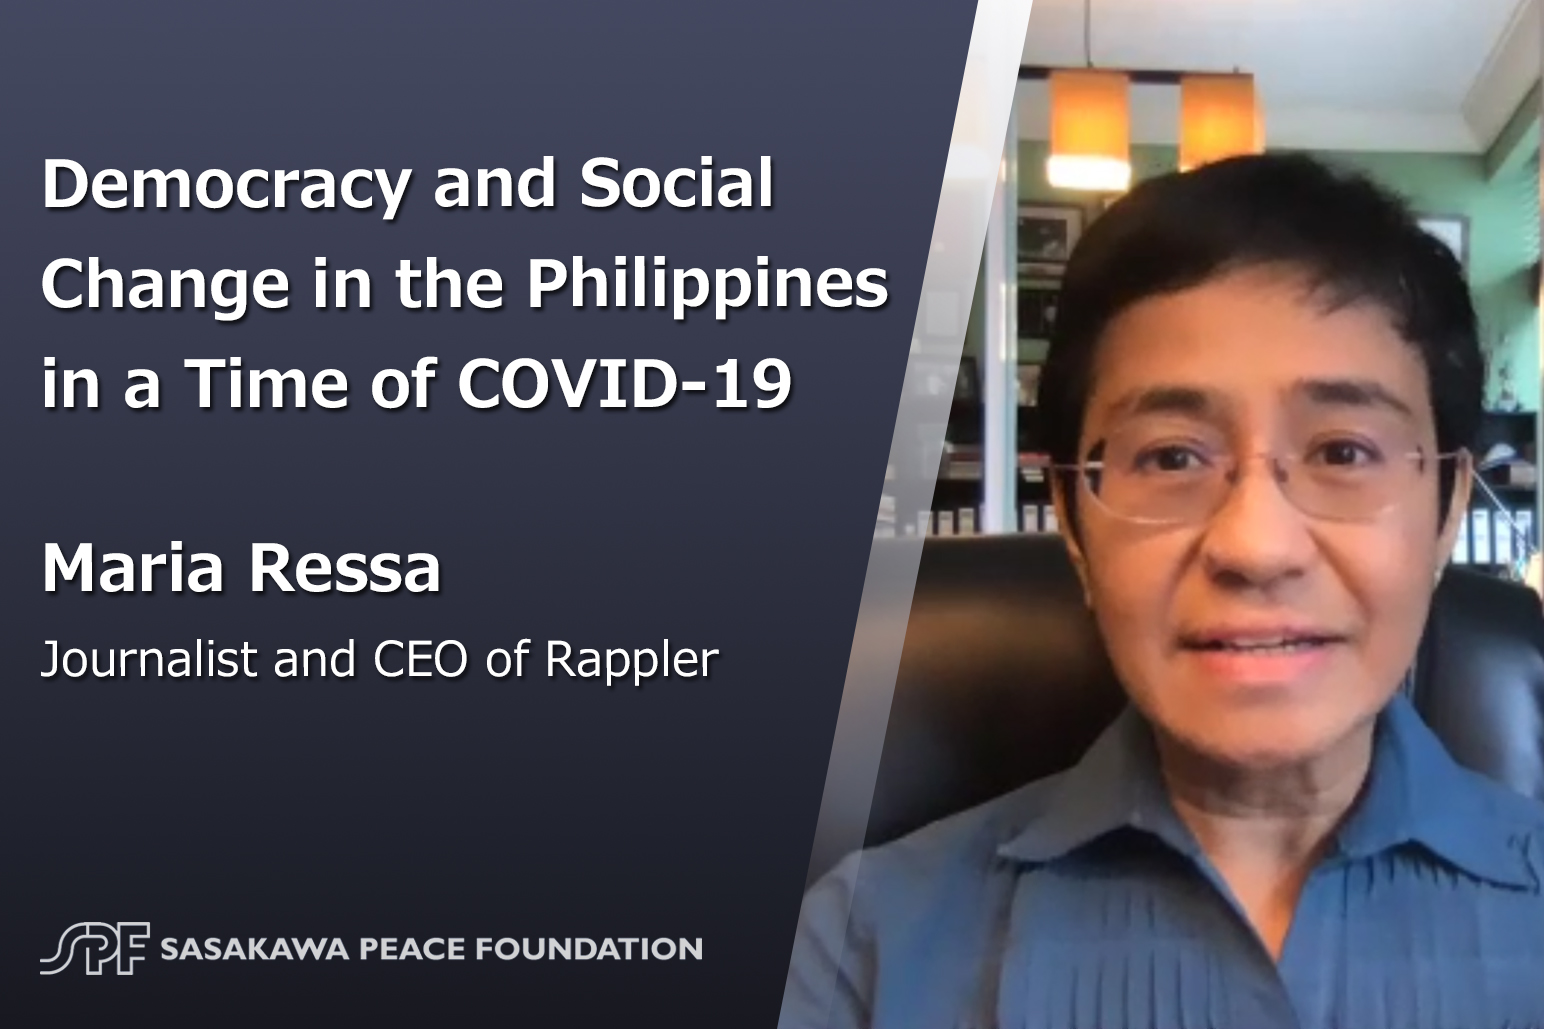 Democracy and social change in the Philippines in a time of COVID-19: Interview with Maria Ressa